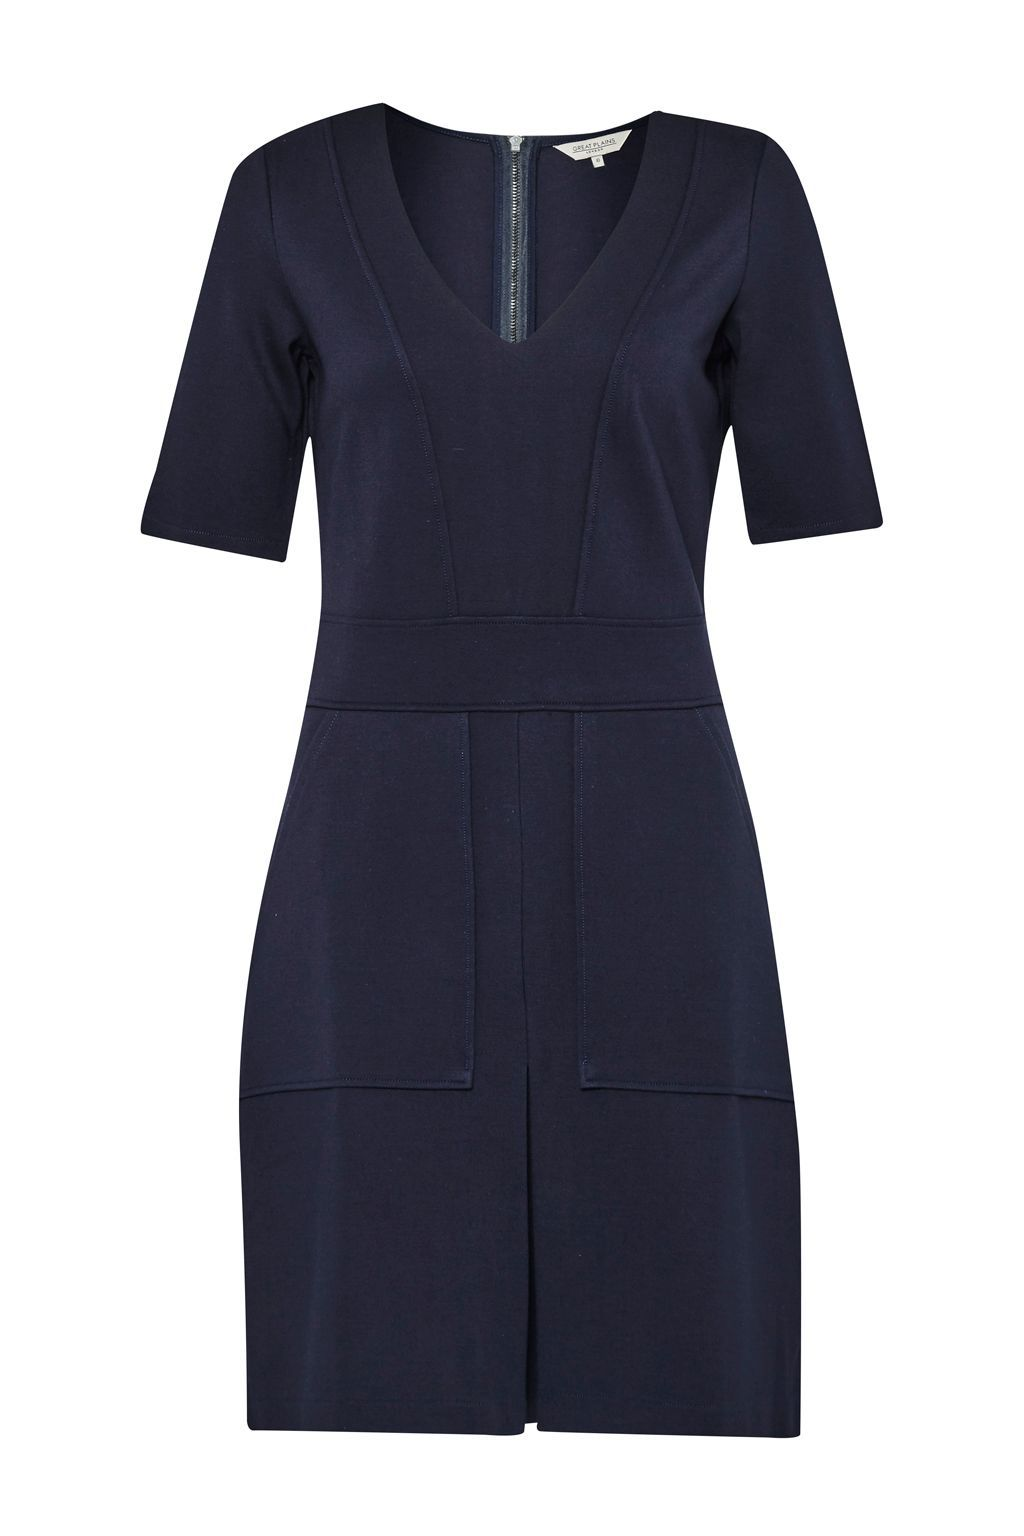 Polly Ponte Utility Dress, Blue - style: shift; neckline: v-neck; fit: tailored/fitted; pattern: plain; predominant colour: navy; occasions: evening; length: just above the knee; fibres: viscose/rayon - stretch; sleeve length: short sleeve; sleeve style: standard; pattern type: fabric; texture group: woven light midweight; season: s/s 2016; wardrobe: event